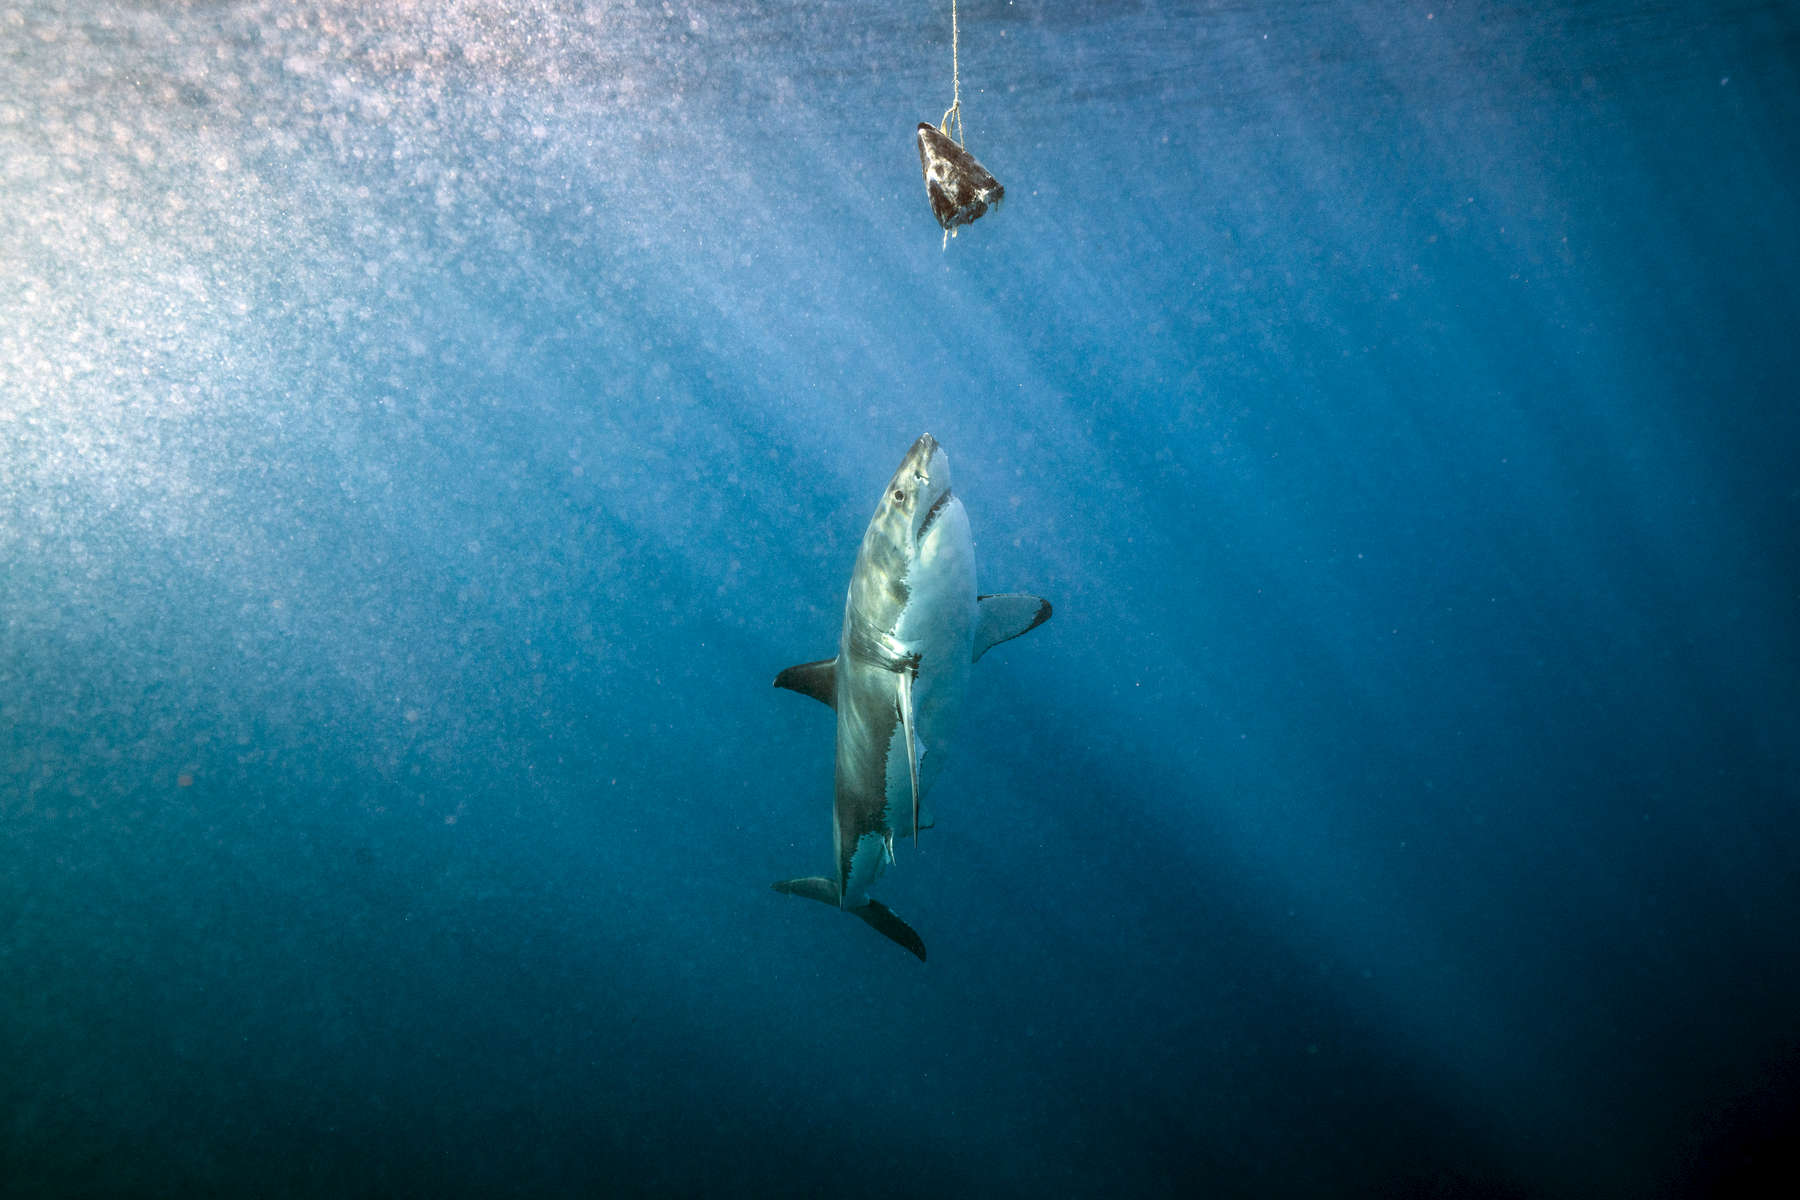 Isla Guadalupe, Mexico - November 12, 2015: A carcharodon carcharias, more commonly and infamously known as a great white shark, inspects bait hanging along the surface waters off the isolated volcanic Mexican Island of Isla Guadalupe. The island, long a destination for fur hunters and sports fishermen has large population of elephant seals, which in turn attracts a seasonal migration of great white sharks. The presence of a population of sharks is so consistent that in recent years the island has become a mecca for shark diving tourism.(Photograph by Benjamin Lowy for The New York Times)